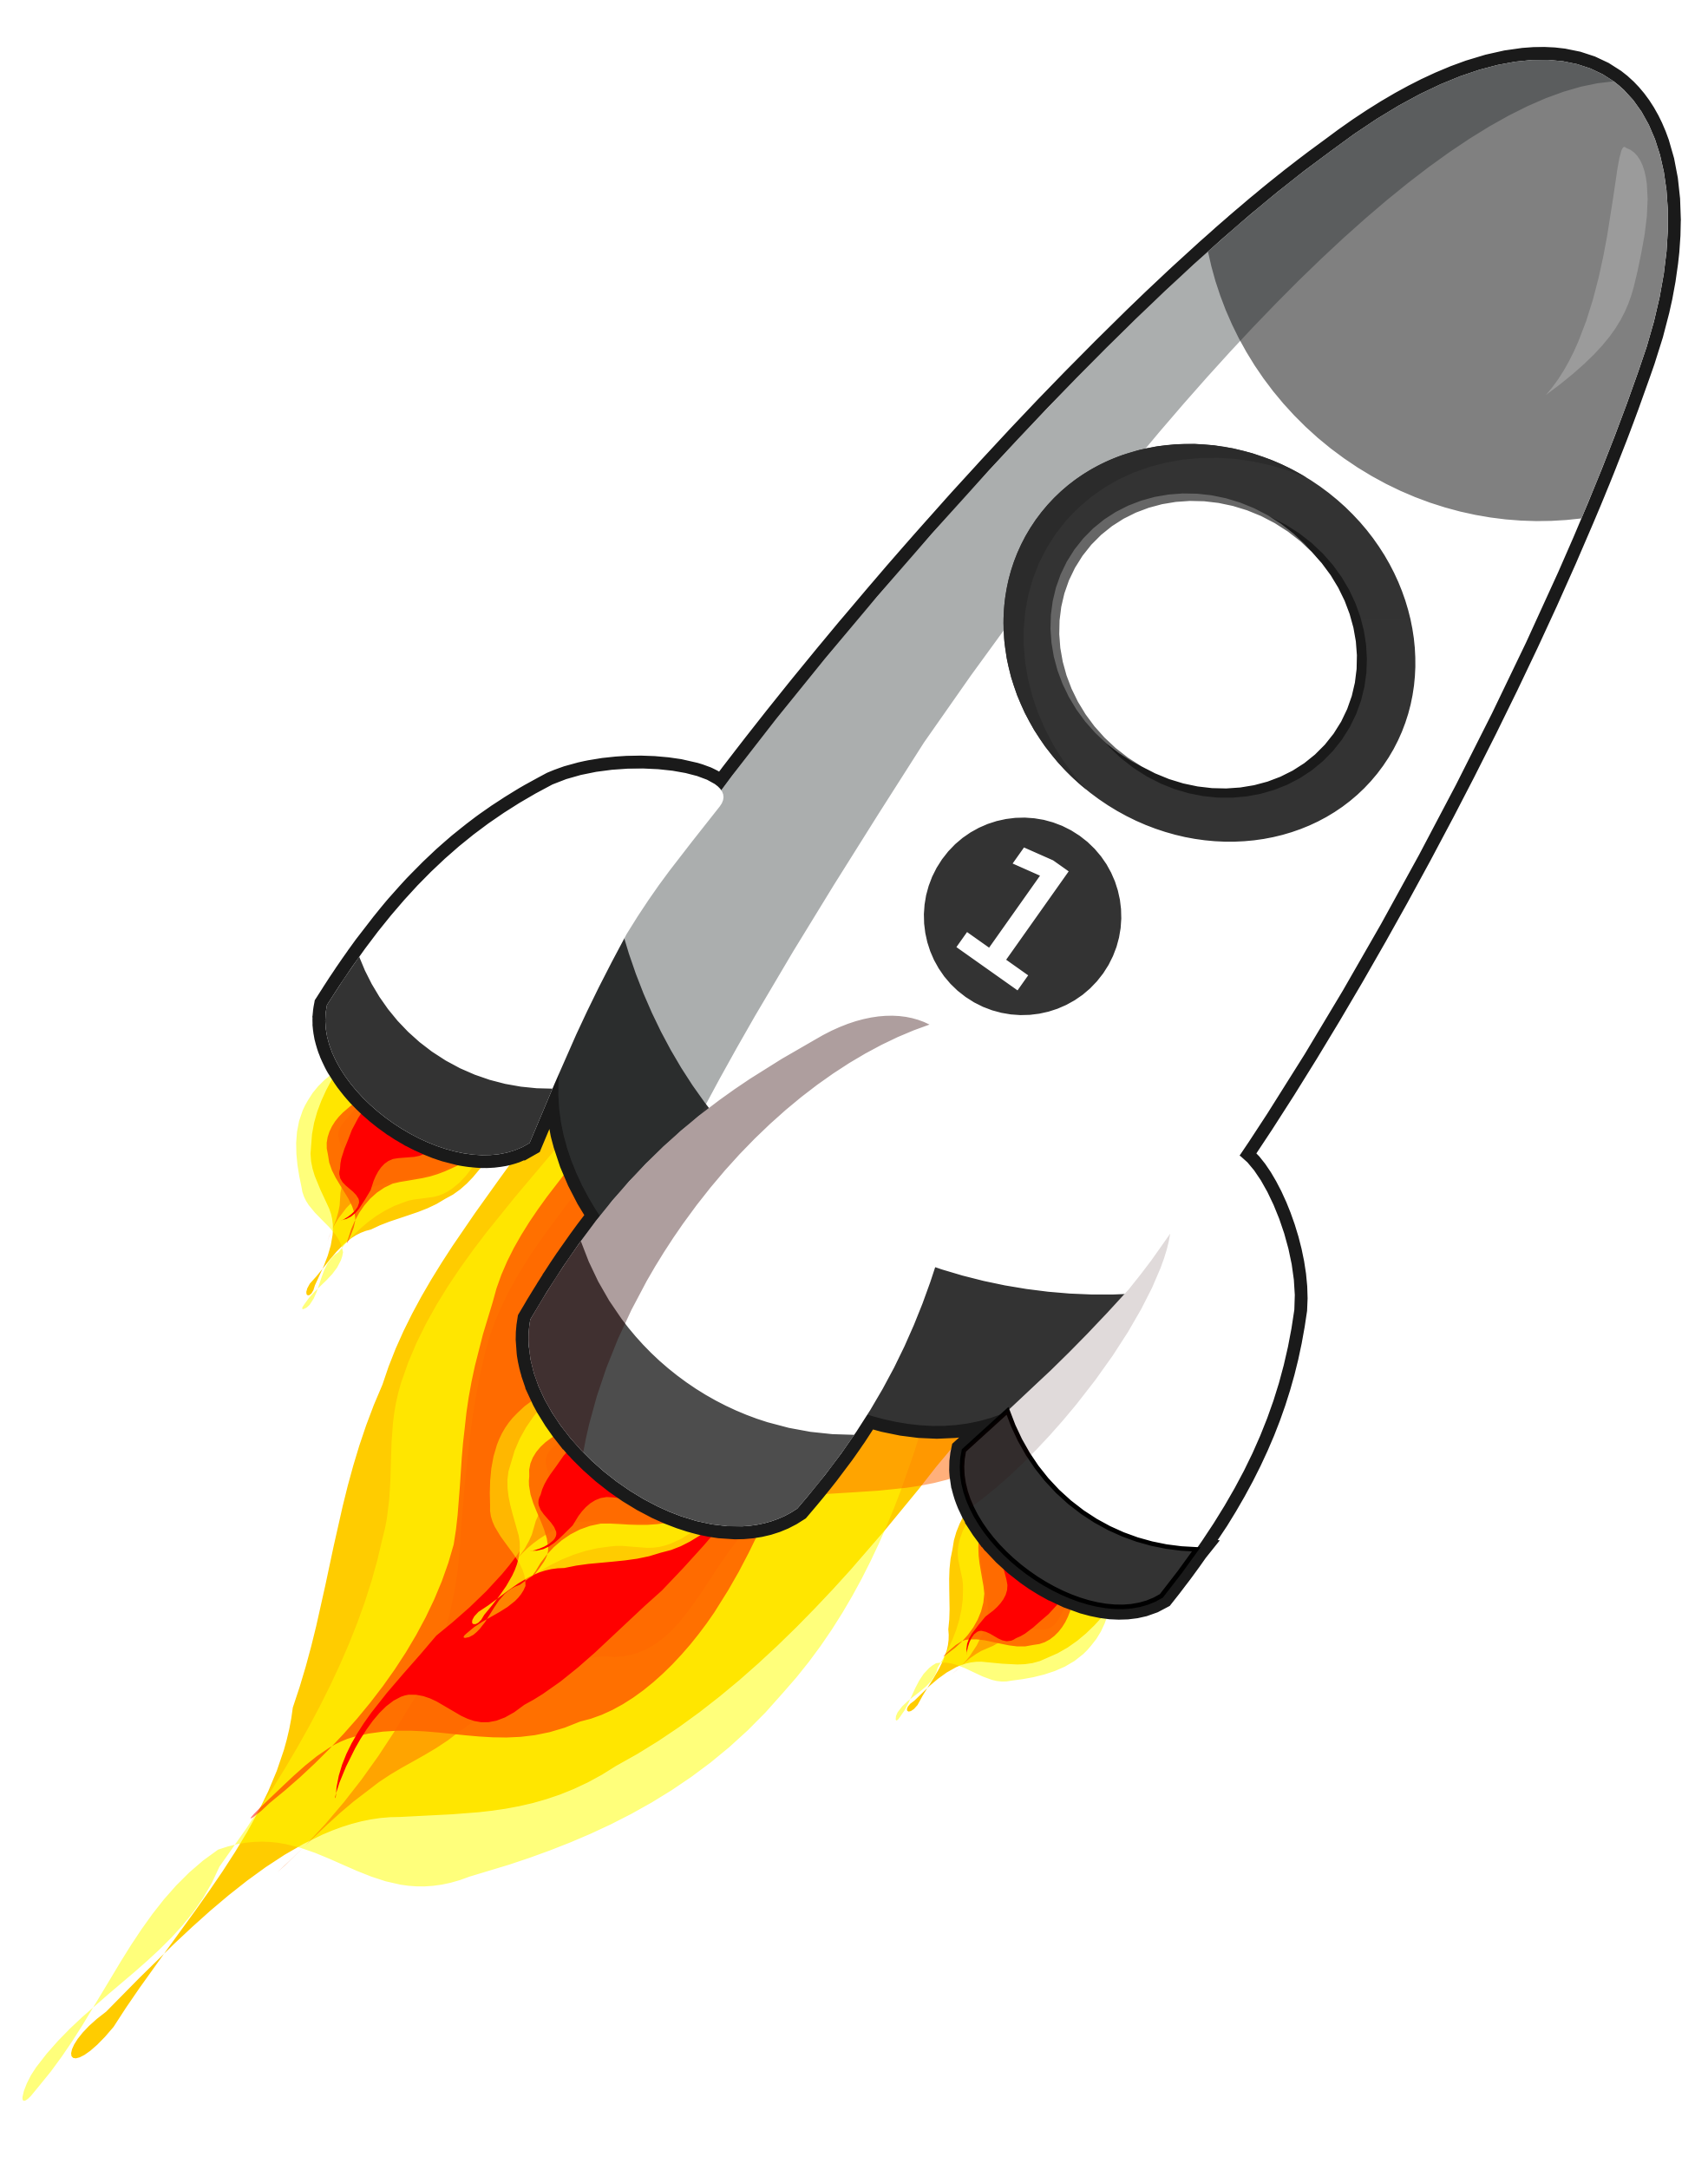 Clipart rocket countdown. The cat s eye